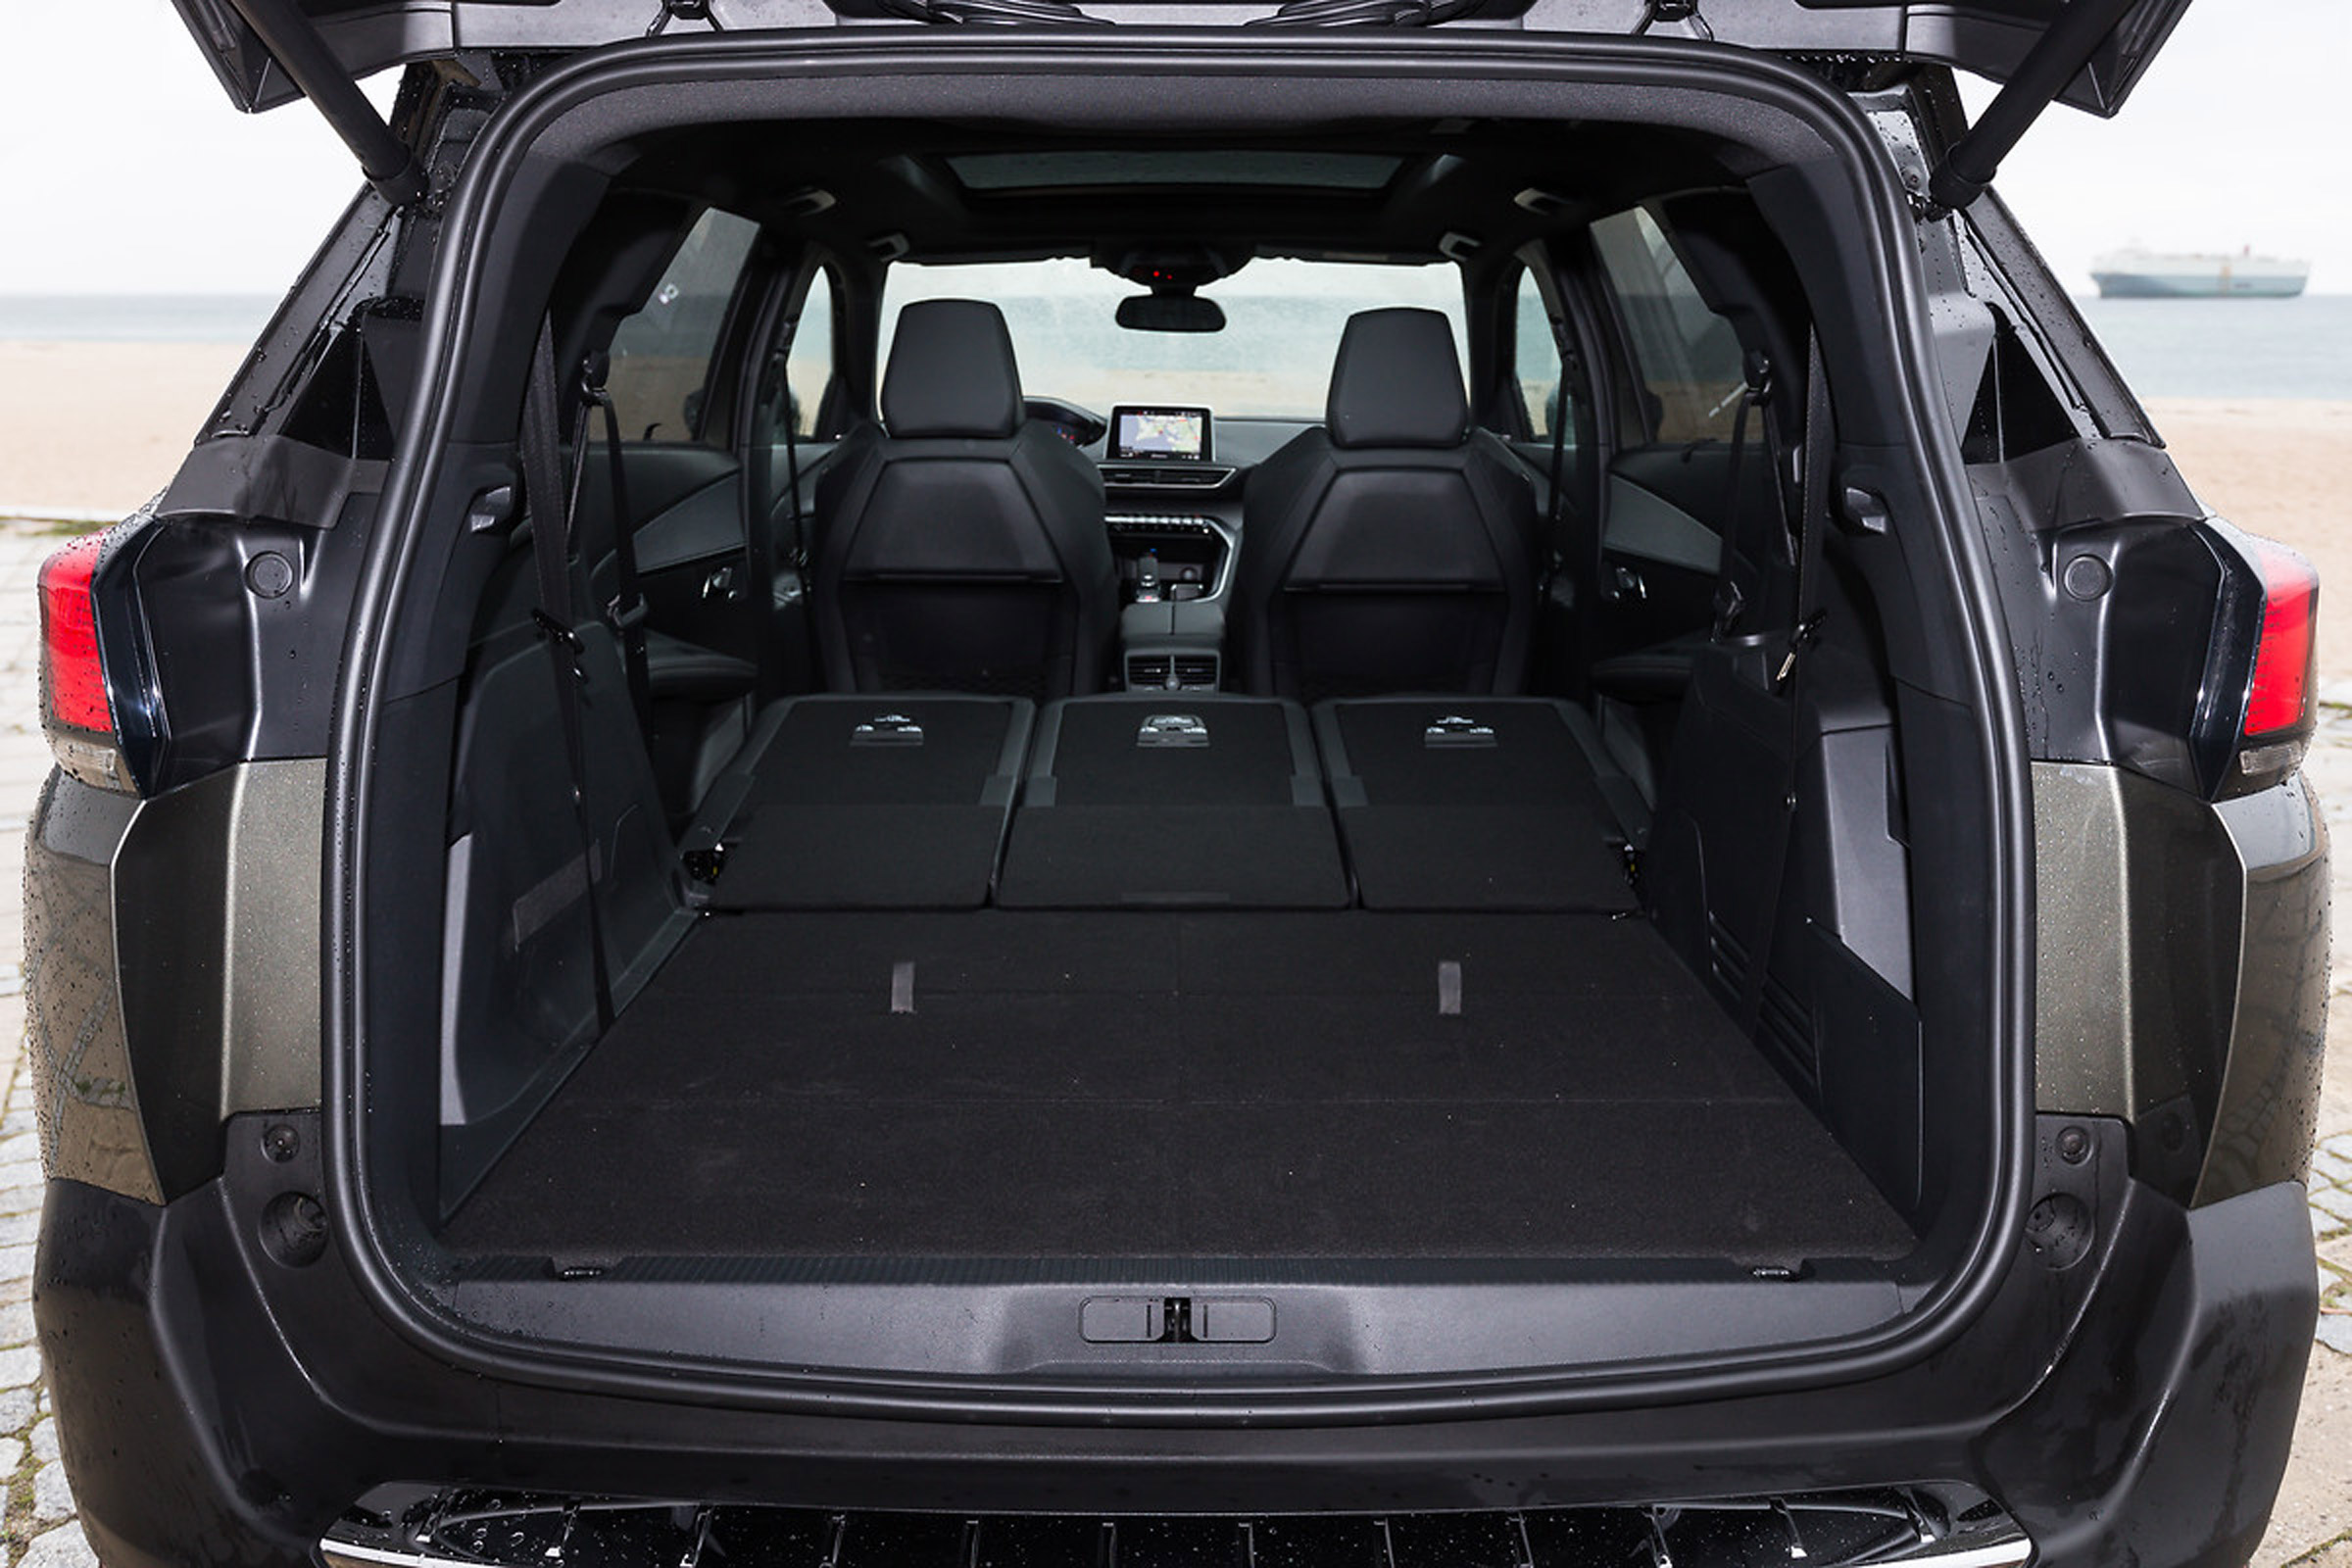 2017 Peugeot 5008 SUV Interior View Cargo Rear Seats Folded All (View 11 of 18)